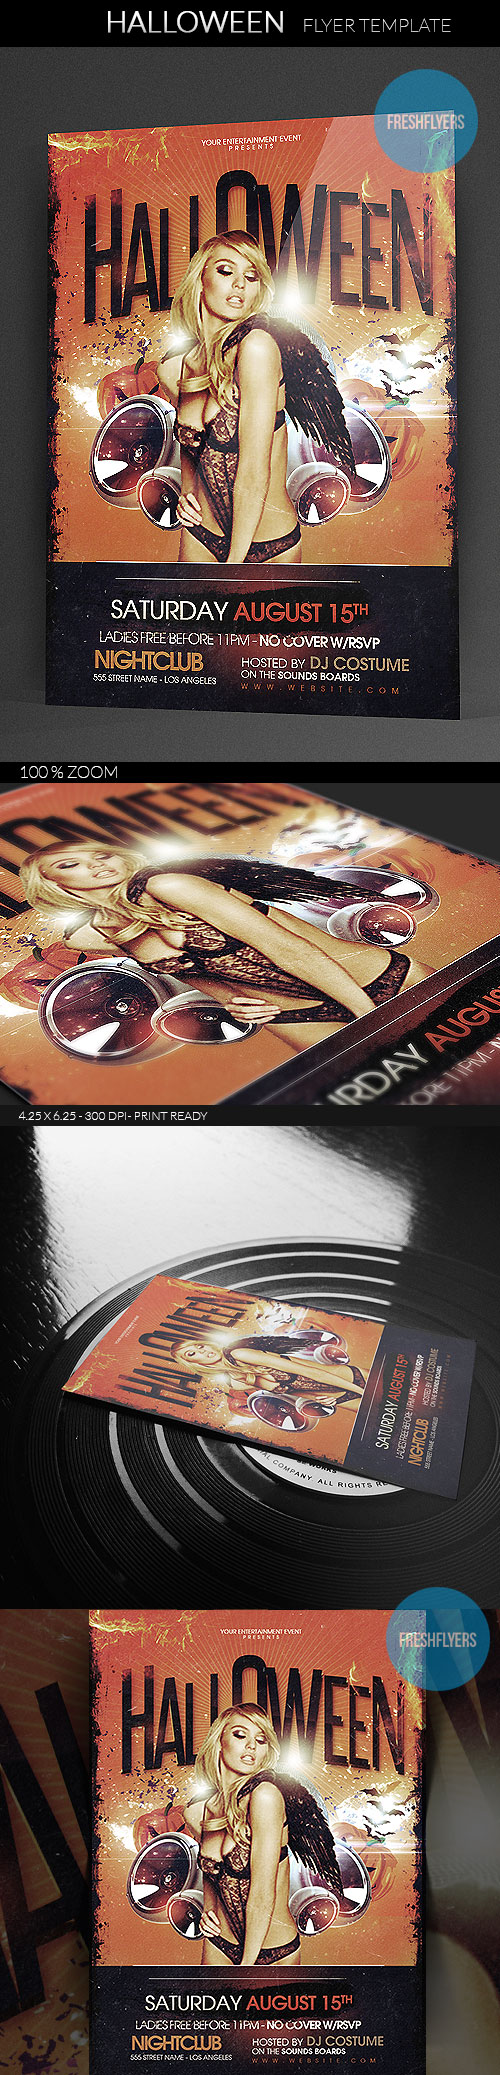 PSD Halloween flyer template. Simple and easy to add your photo and custom text. Design a cool H ...